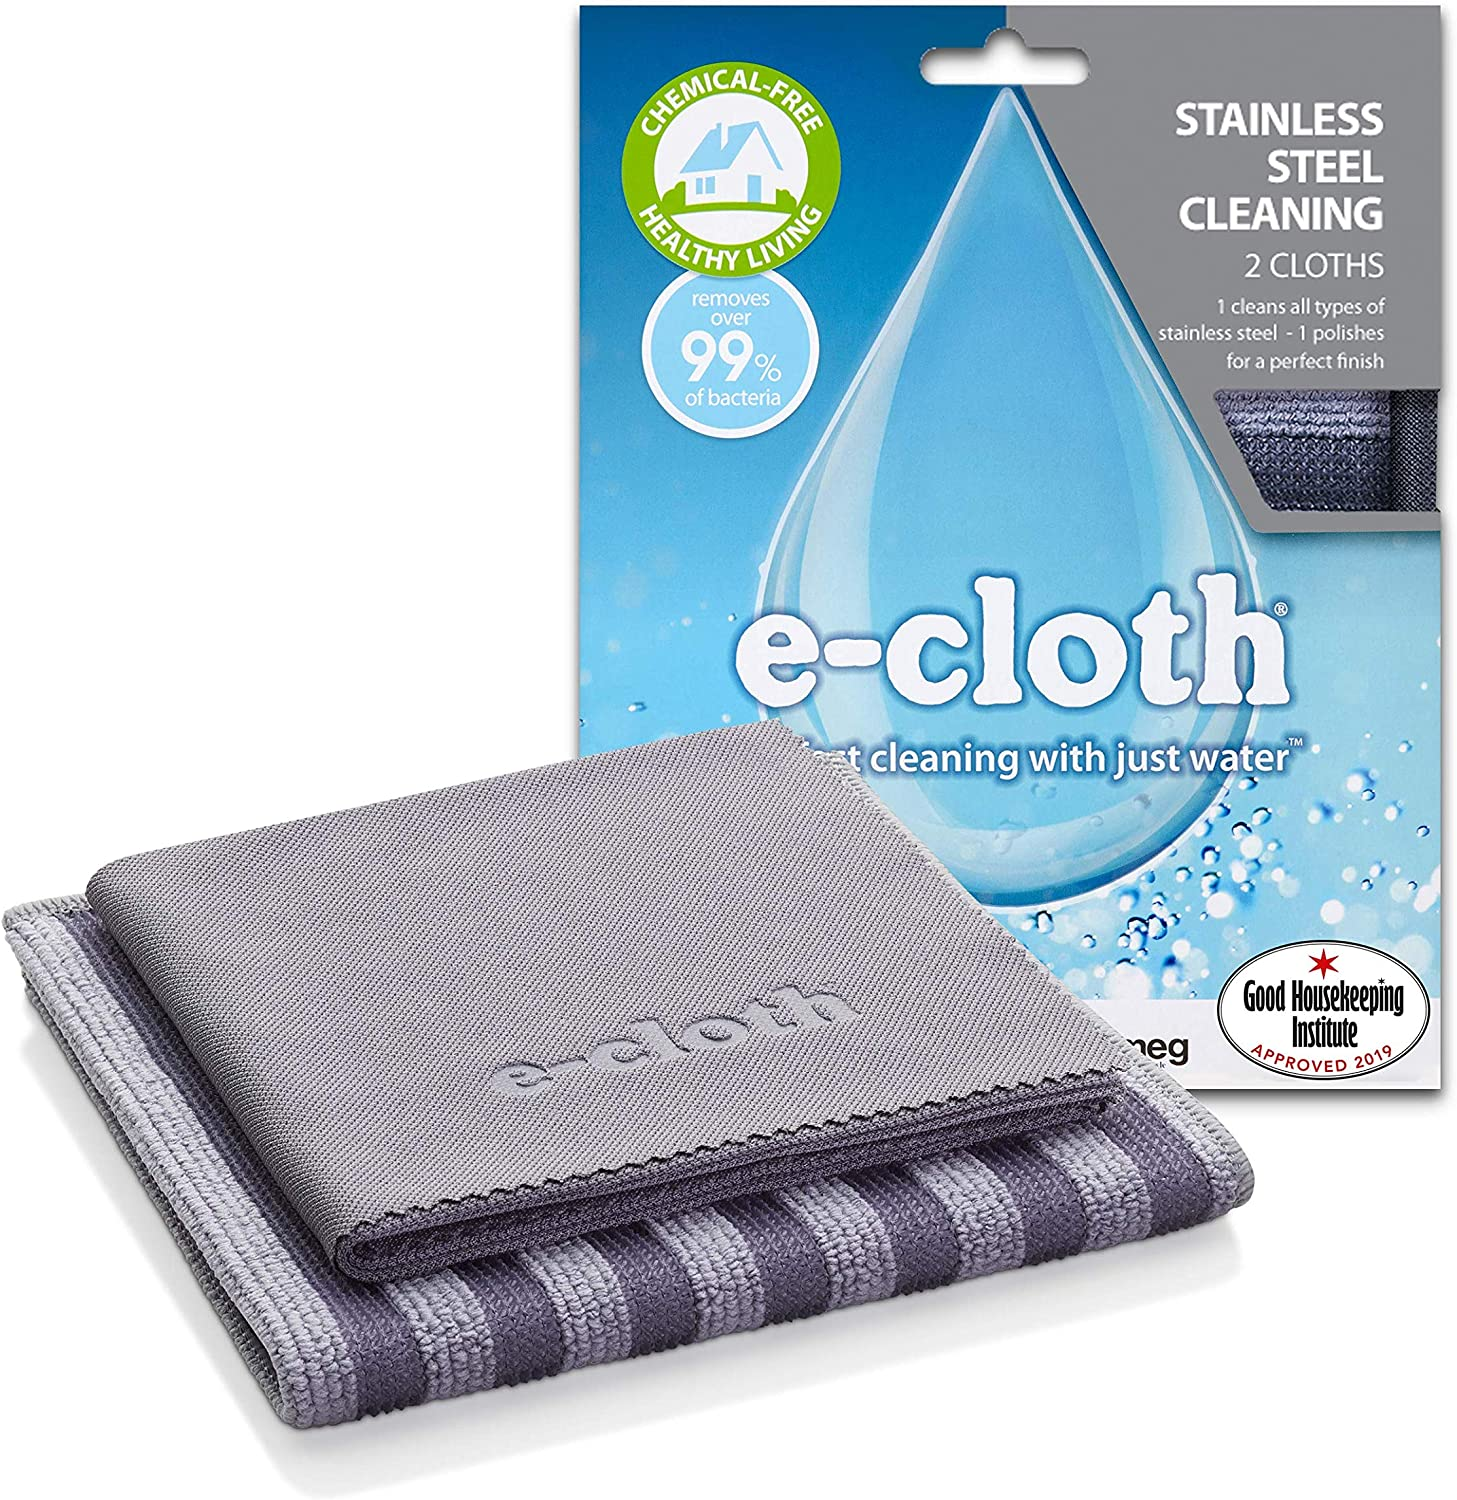 CHEMICAL FREE CLEANING-STAINLESS STEEL CLOTH X 3-FREE SHIPPING E-CLOTH ECLOTH